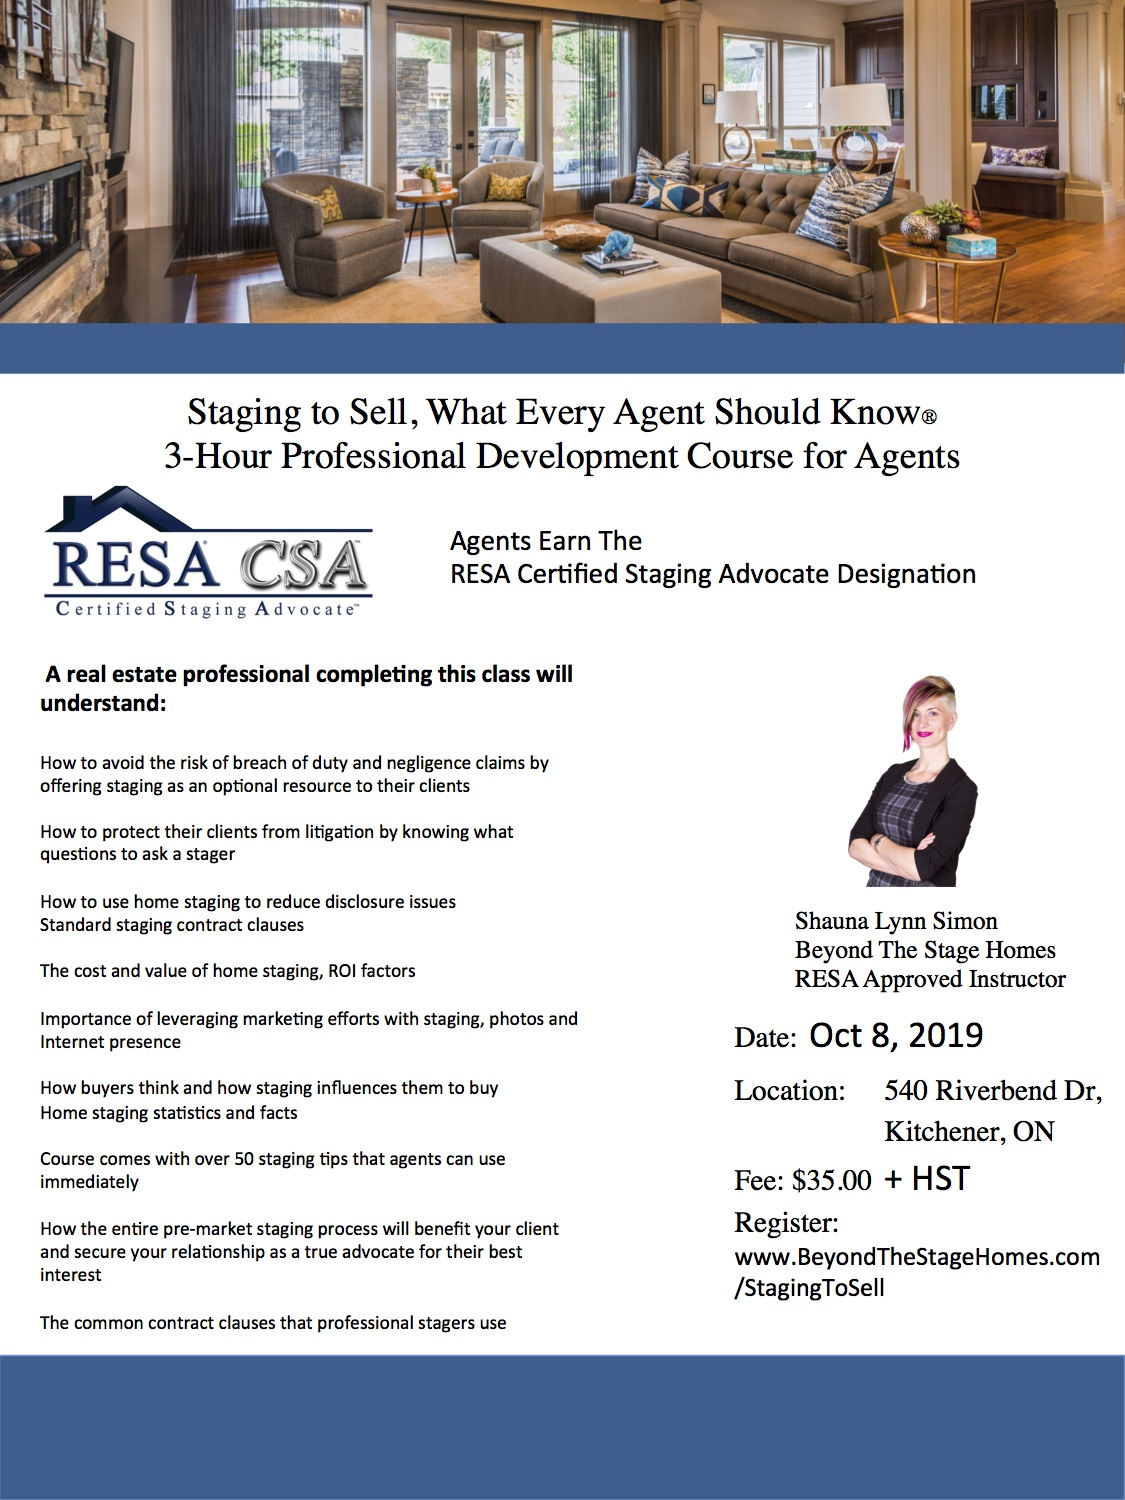 KWAR Staging to Sell Flyer - 08Oct19.jpg